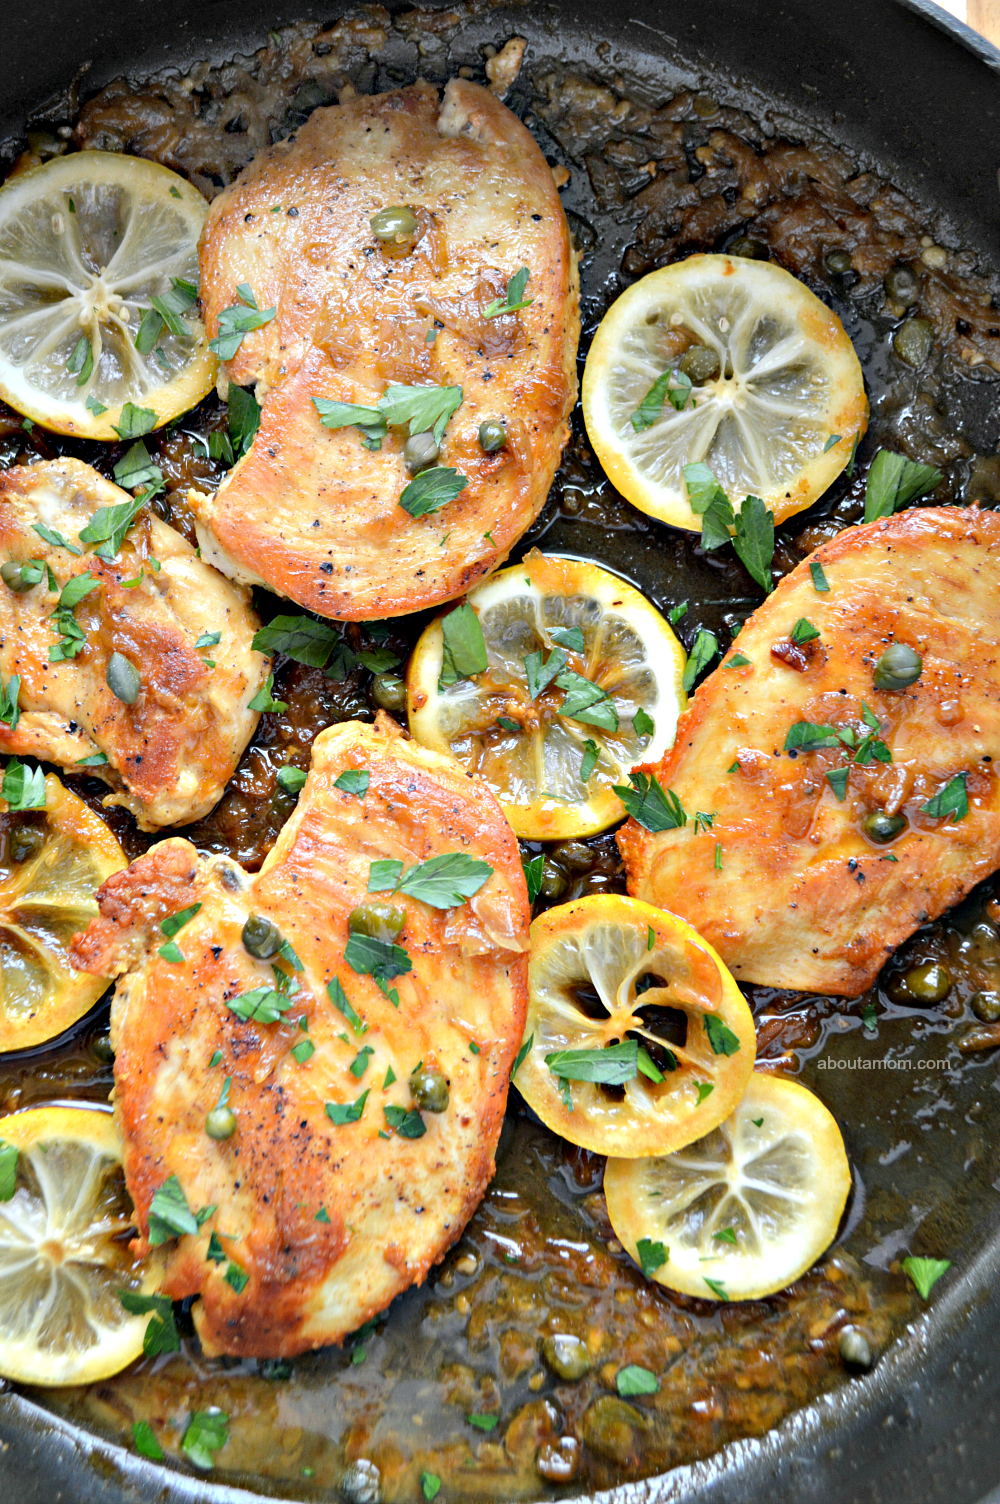 Sauteed chicken in a buttery lemon sauce with caper and sliced lemon. This flavorful skillet lemon chicken recipe comes together quickly and is perfect for a busy weeknight.